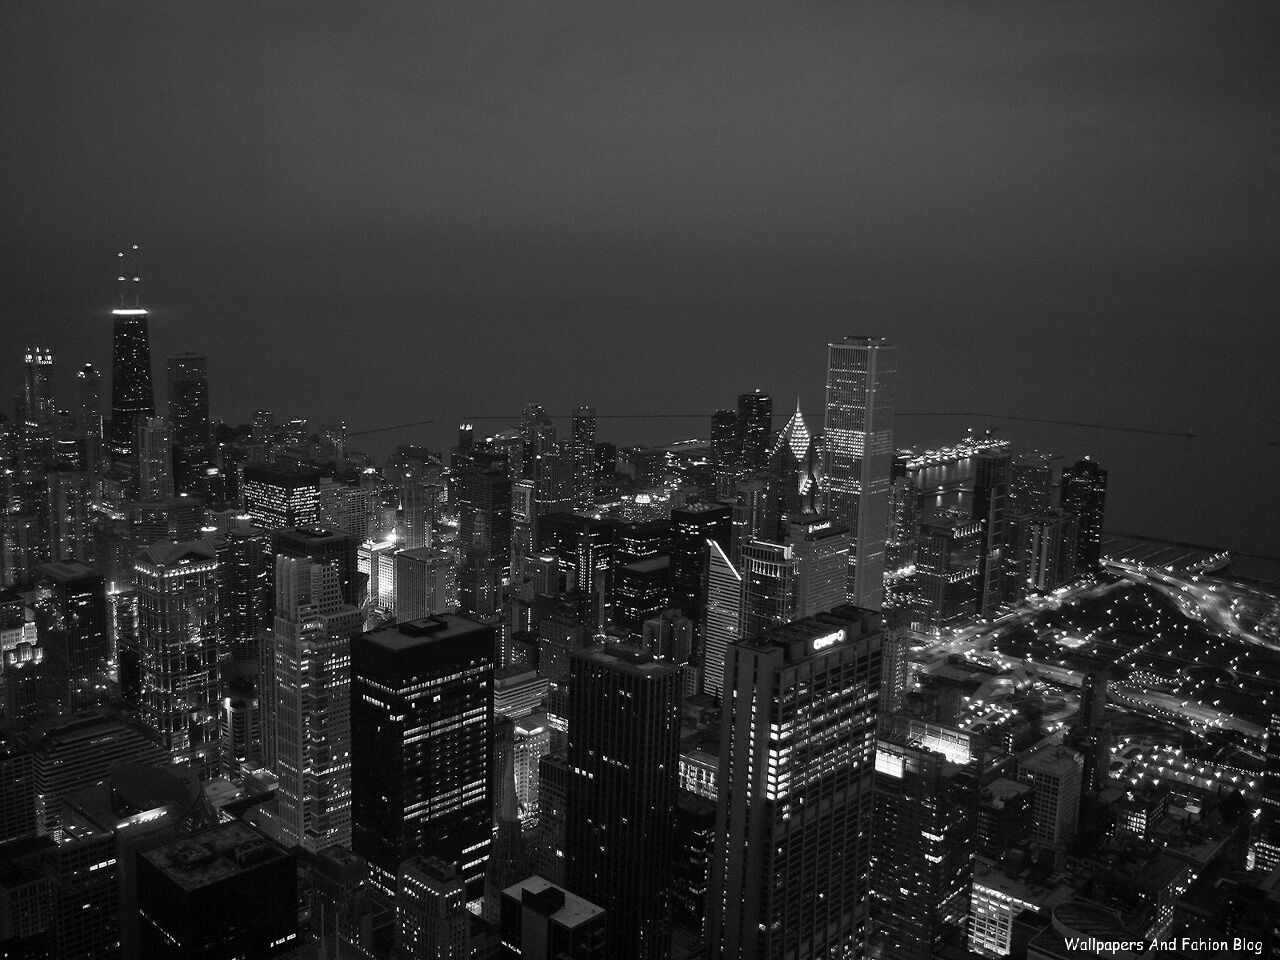 Chicago At Night Wallpaper: Tops Wallpapers Around The World (Natural Background